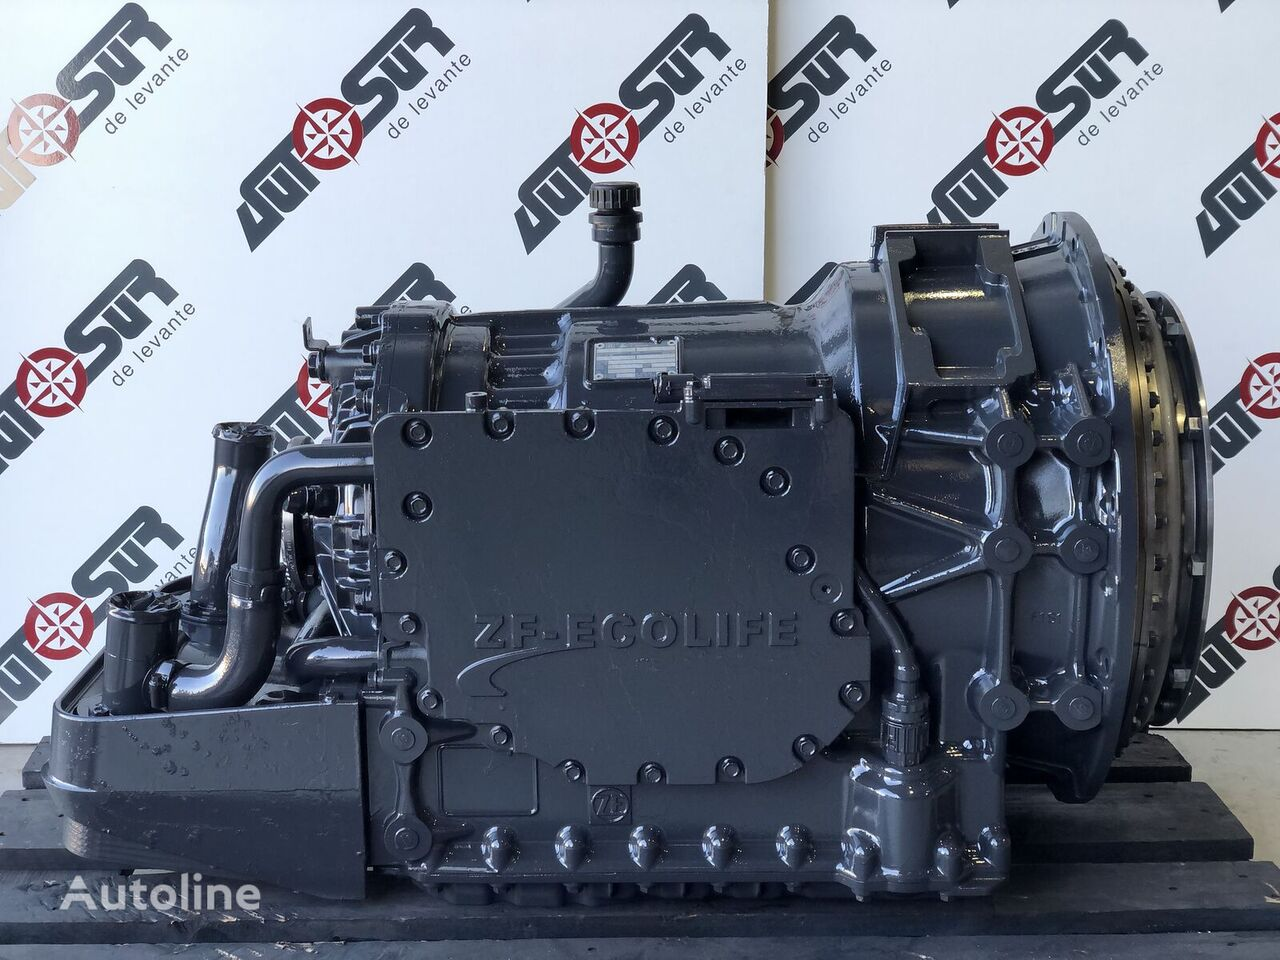 ZF 4181040052 (81.33001-6706) gearbox for truck